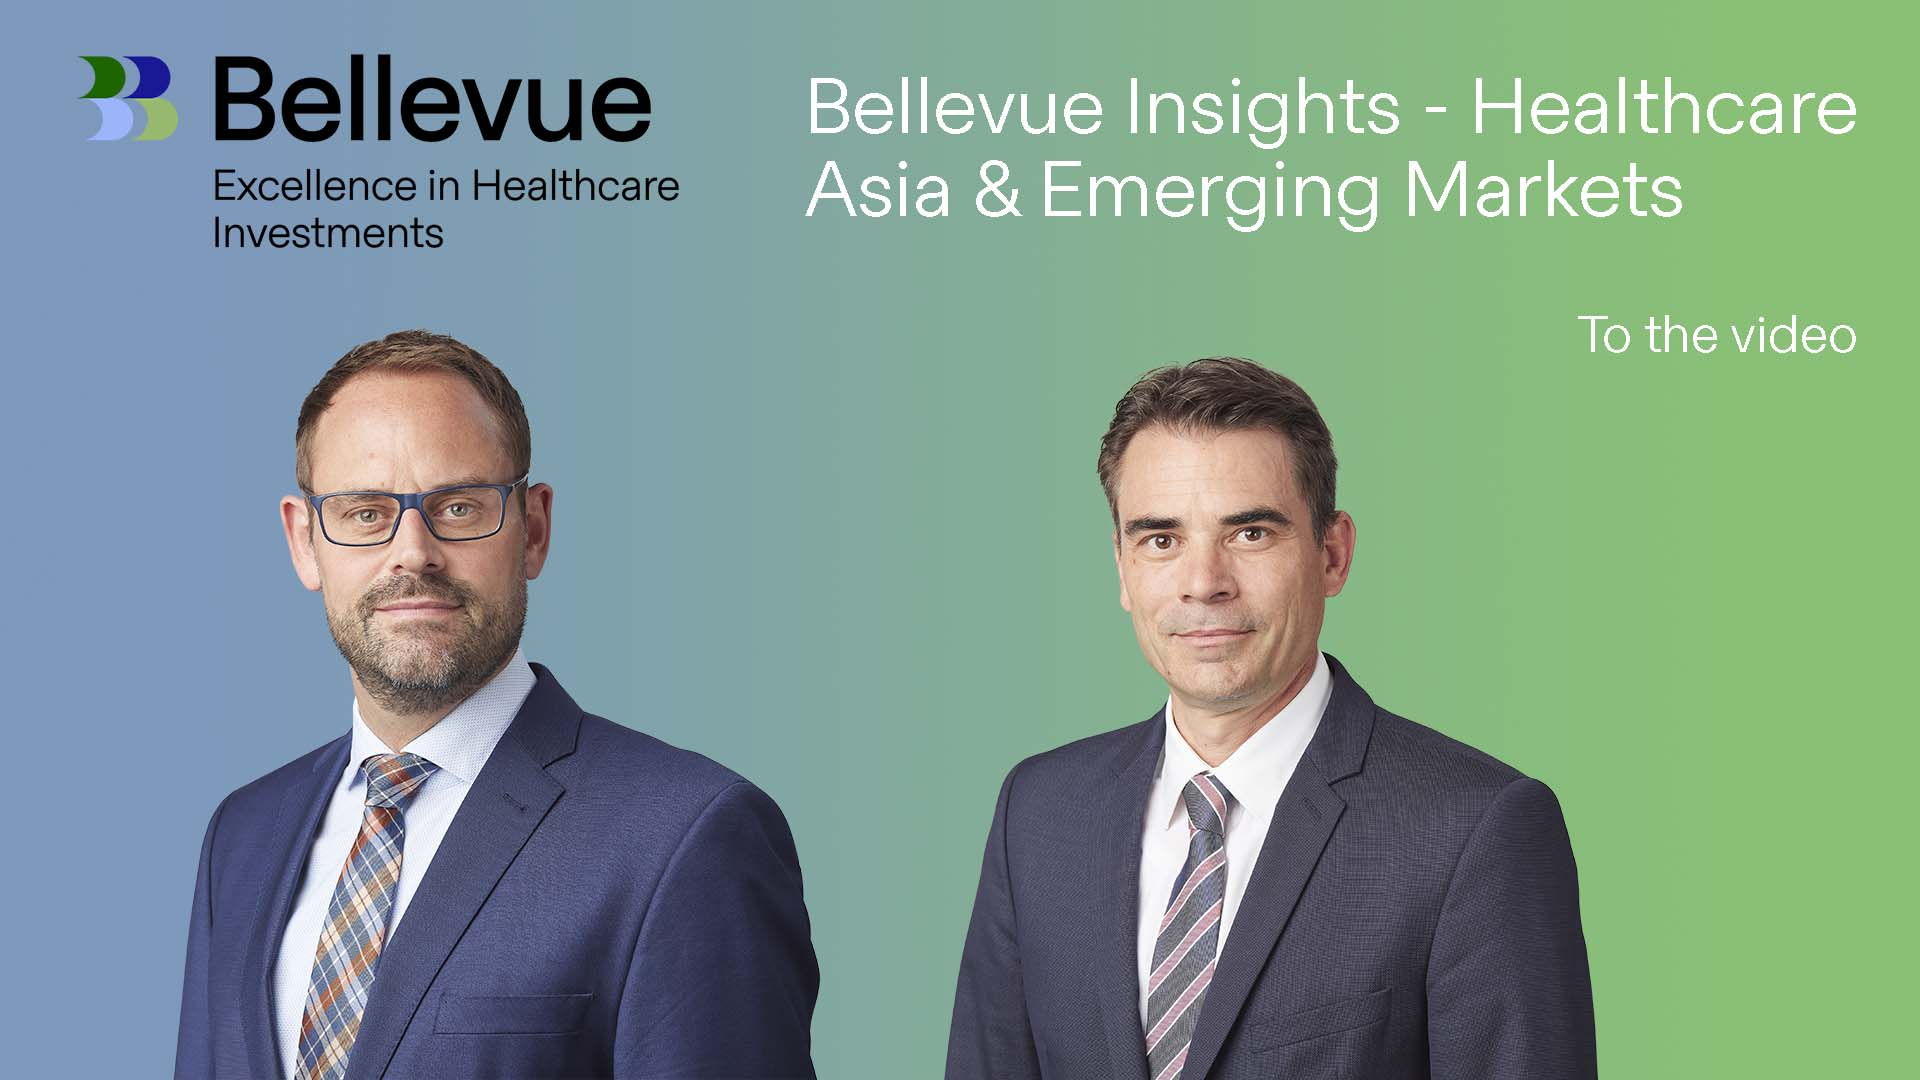 Bellevue Insights - Healthcare Asia & Emerging Markets   Update with the Portfolio Managers Oliver Kubli and Remo Krauer